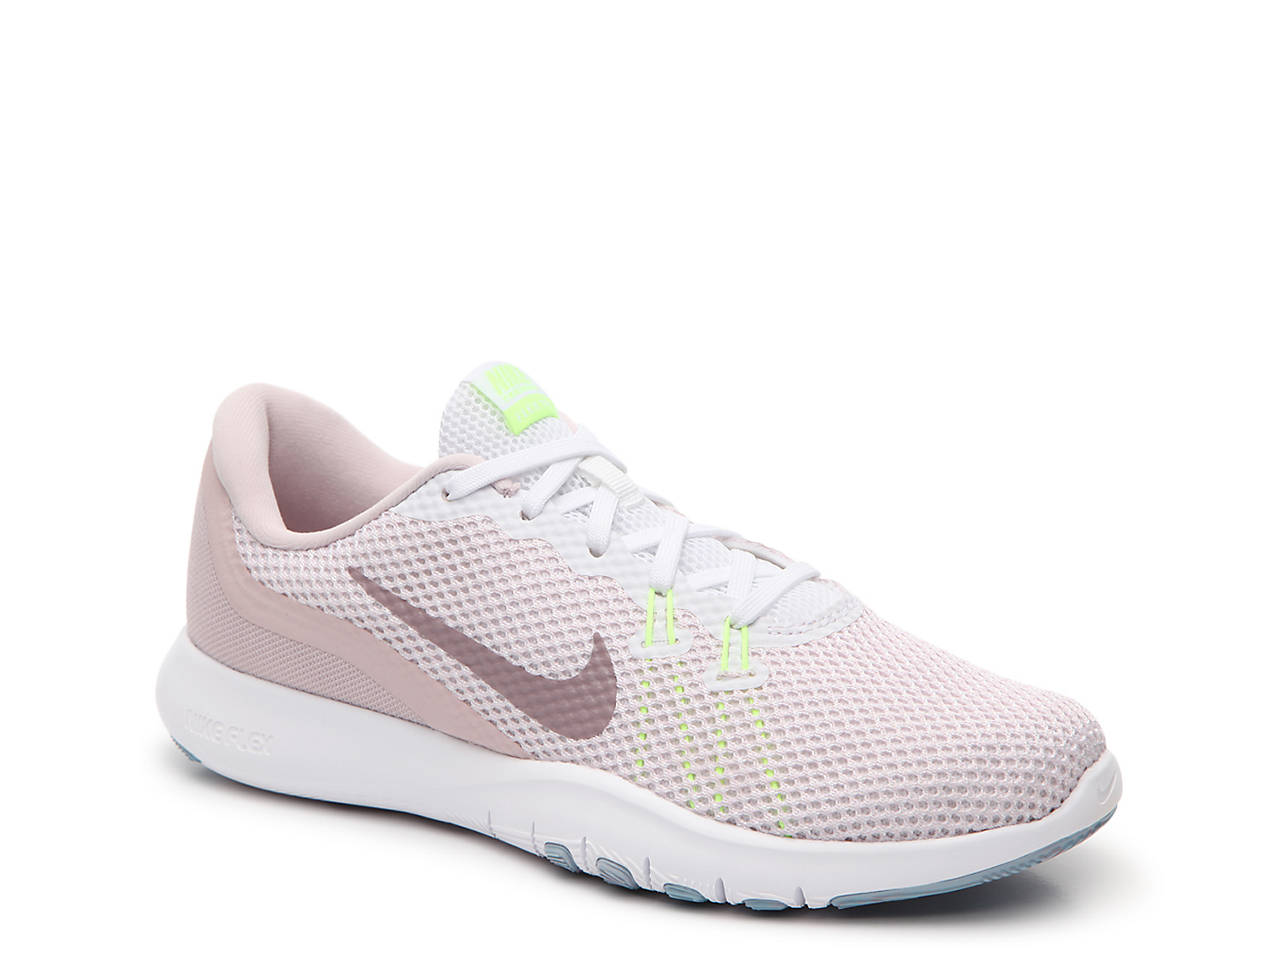 Nike Flex Trainer 7 Training Shoe - Women s Women s Shoes  9da491b37